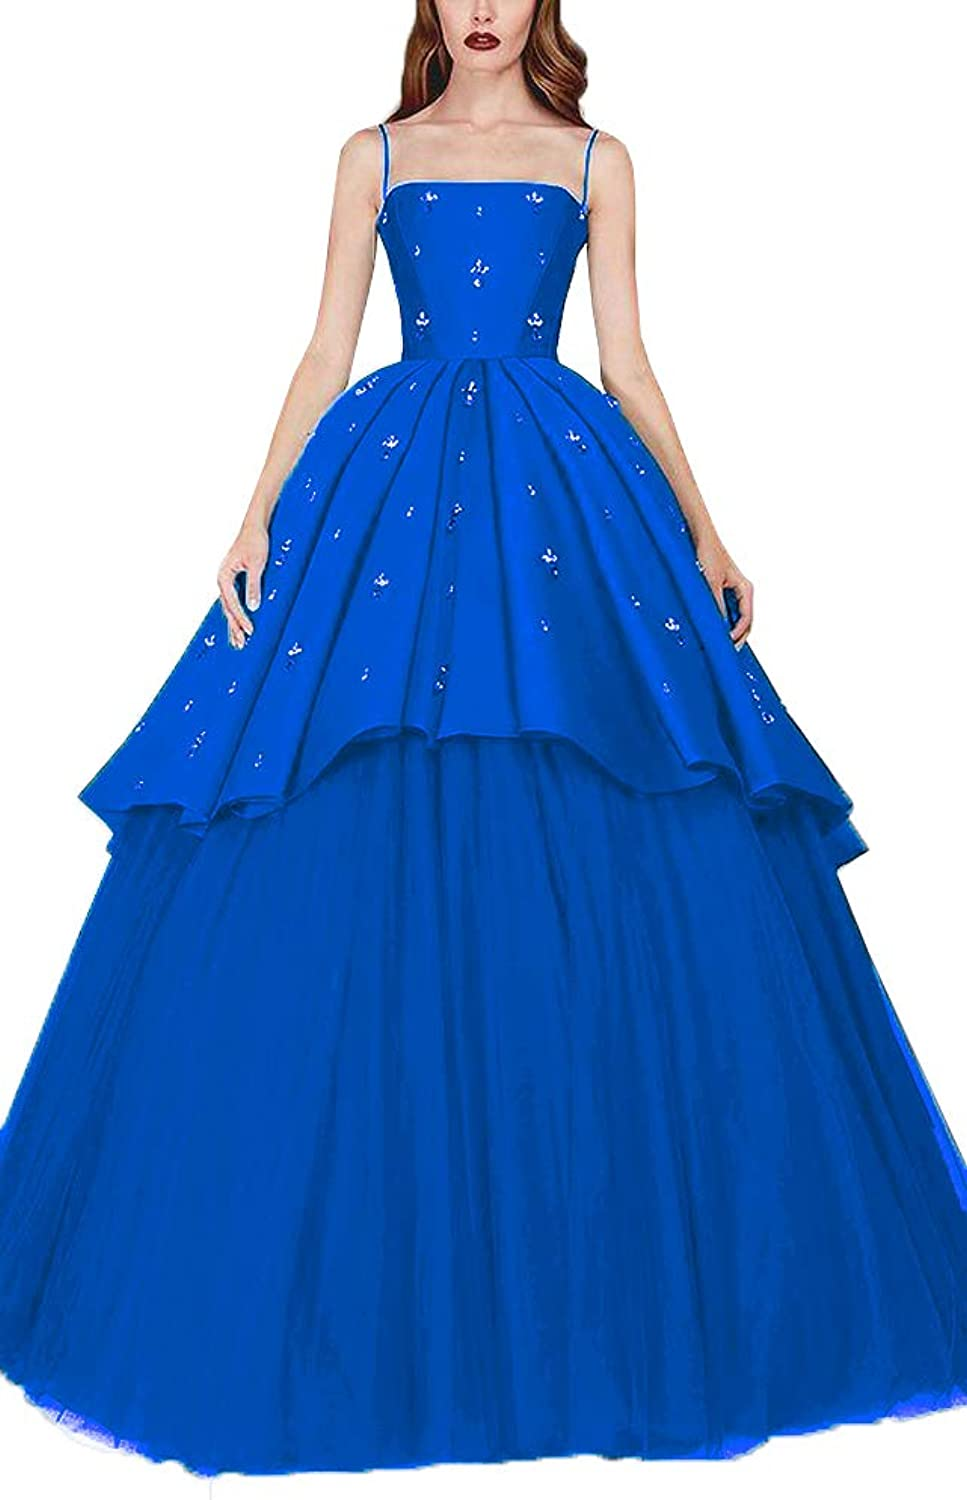 EileenDor Women's Sexy Spaghetti Strap Beaded Crystal High Low Quinceanera Dresses Ball Gown Satin Tulle Prom Gowns